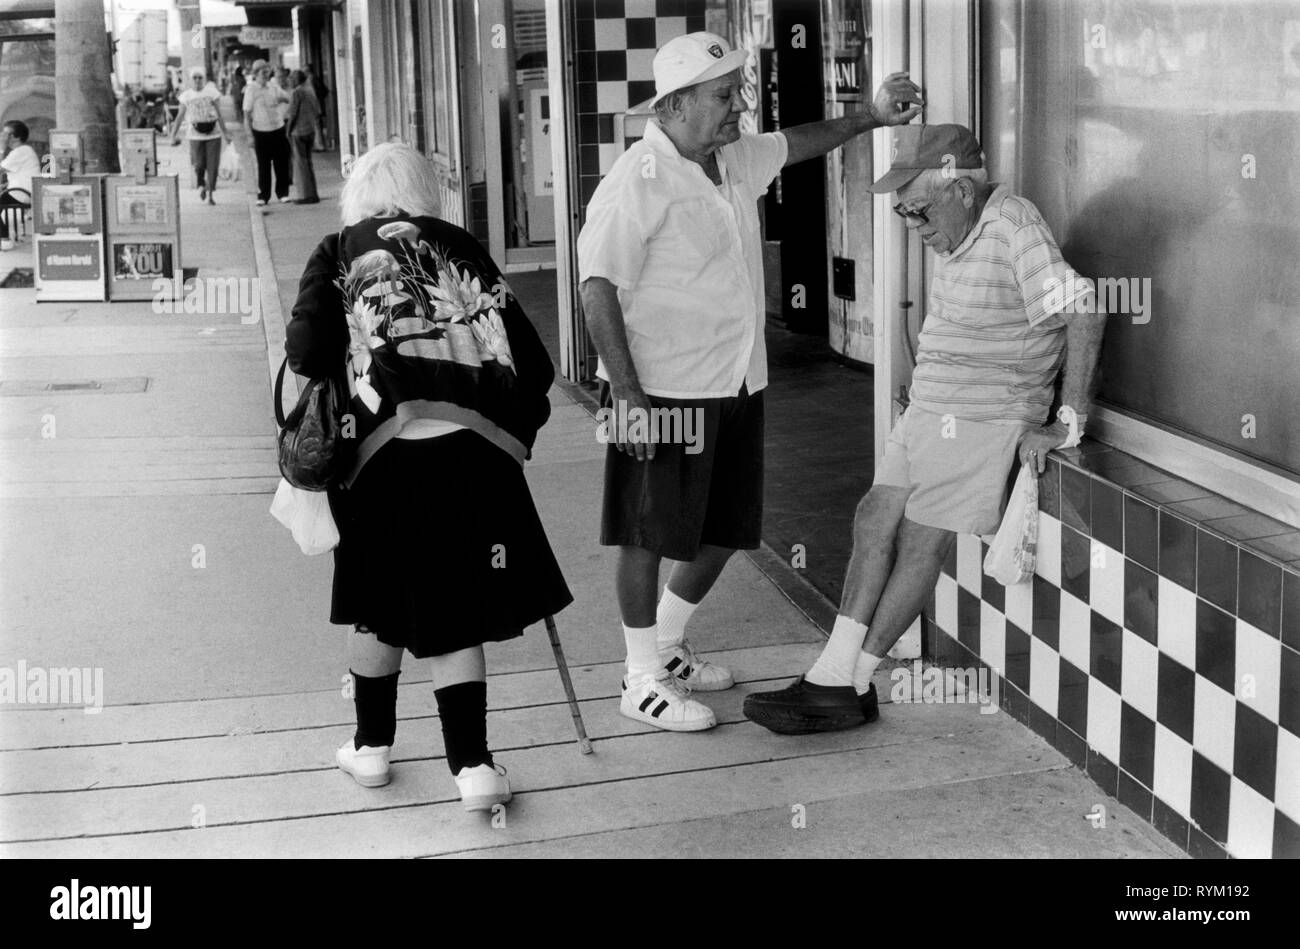 SENIORS SOUTH BEACH 1990S USA FLORIDA Two old men passing the time of day chatting while an old woman walks past using a walking stick South Beach Miami Florida 1990s 90s US HOMER SYKES Stock Photo